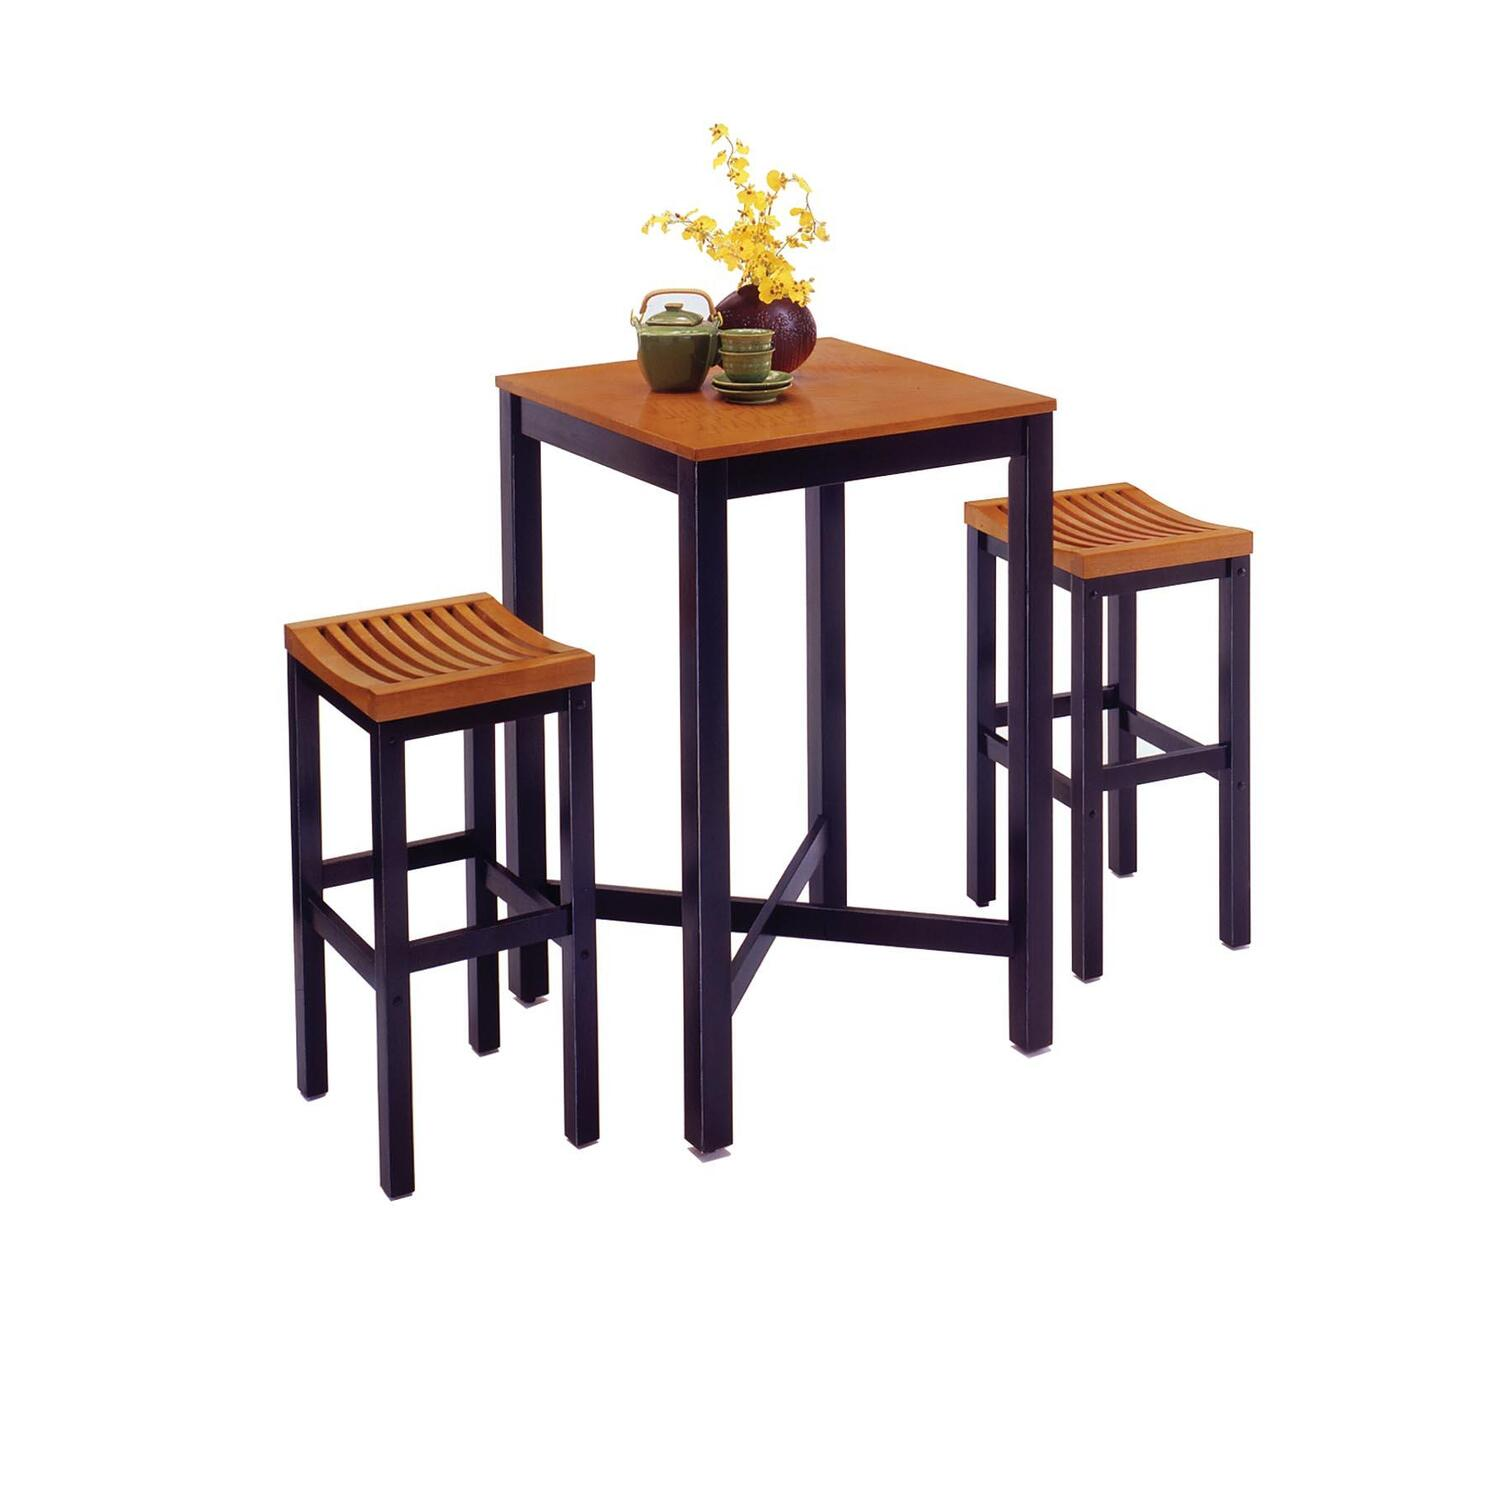 home styles bar table with veneer top bar stools by oj commerce 5983 358. Black Bedroom Furniture Sets. Home Design Ideas